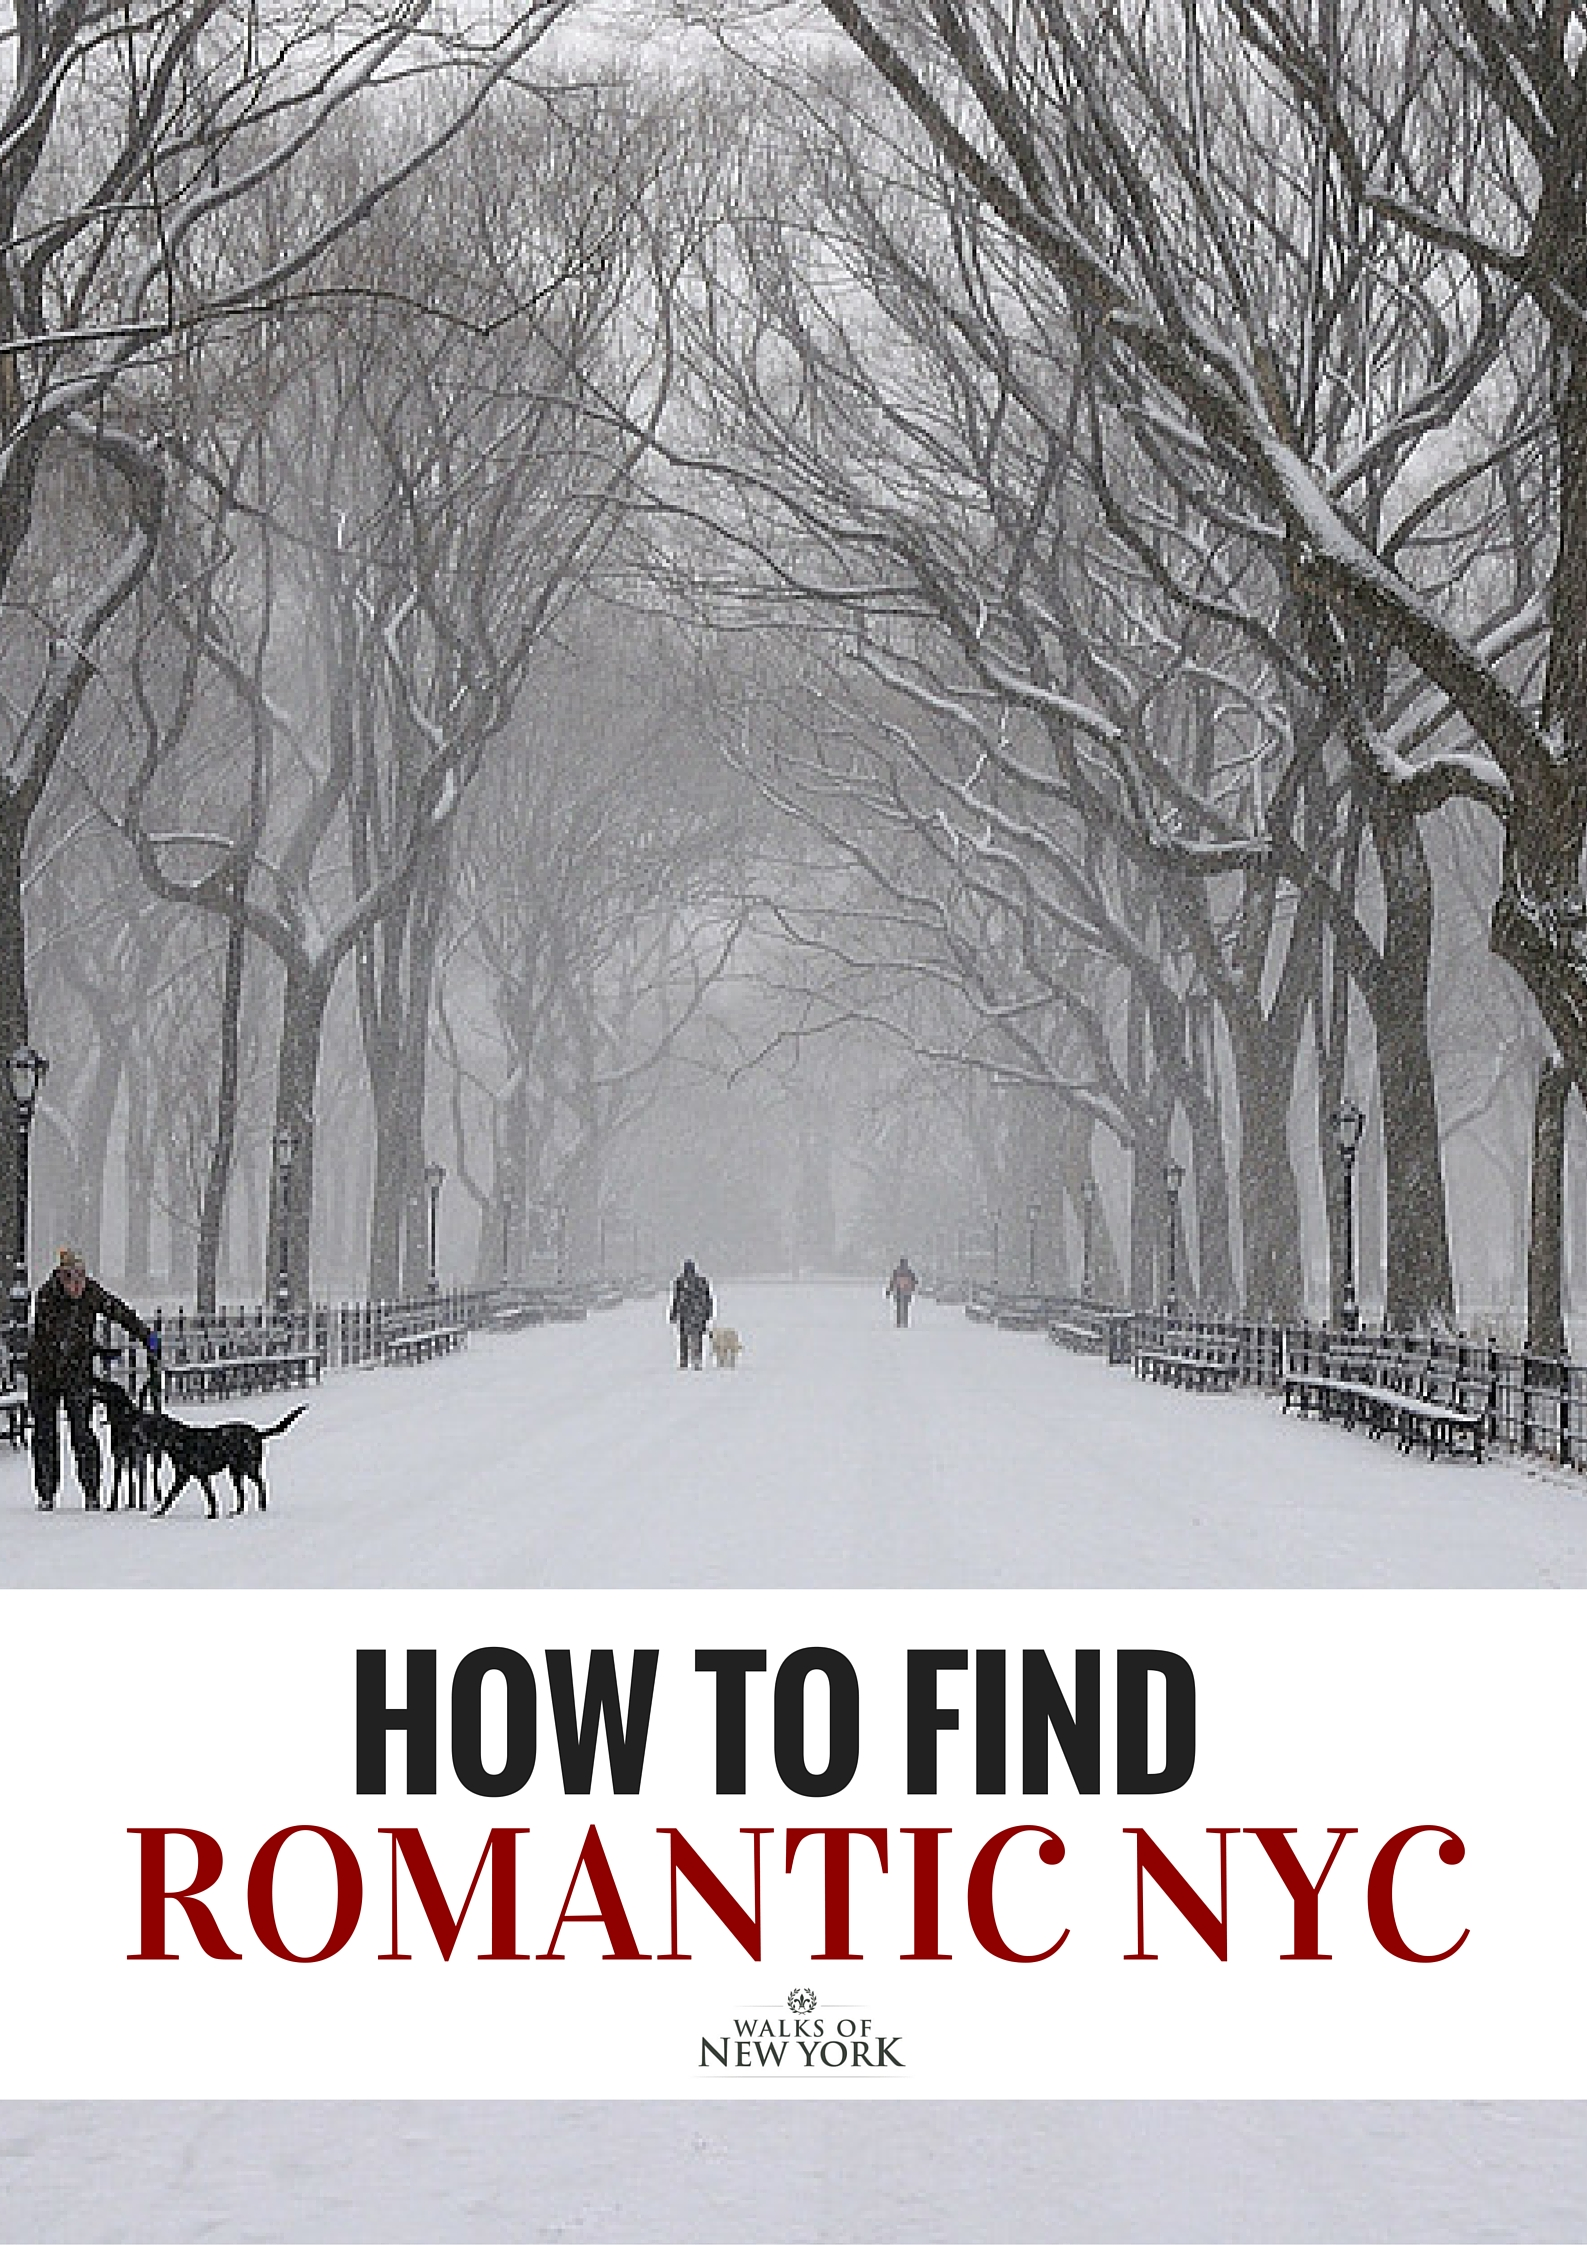 Walking through central park on a snowy day is one of the most romantic things to do in New York. Find out other great romantic options in our blog. Photo courtesy of Ralph Hockens Via Flickr.